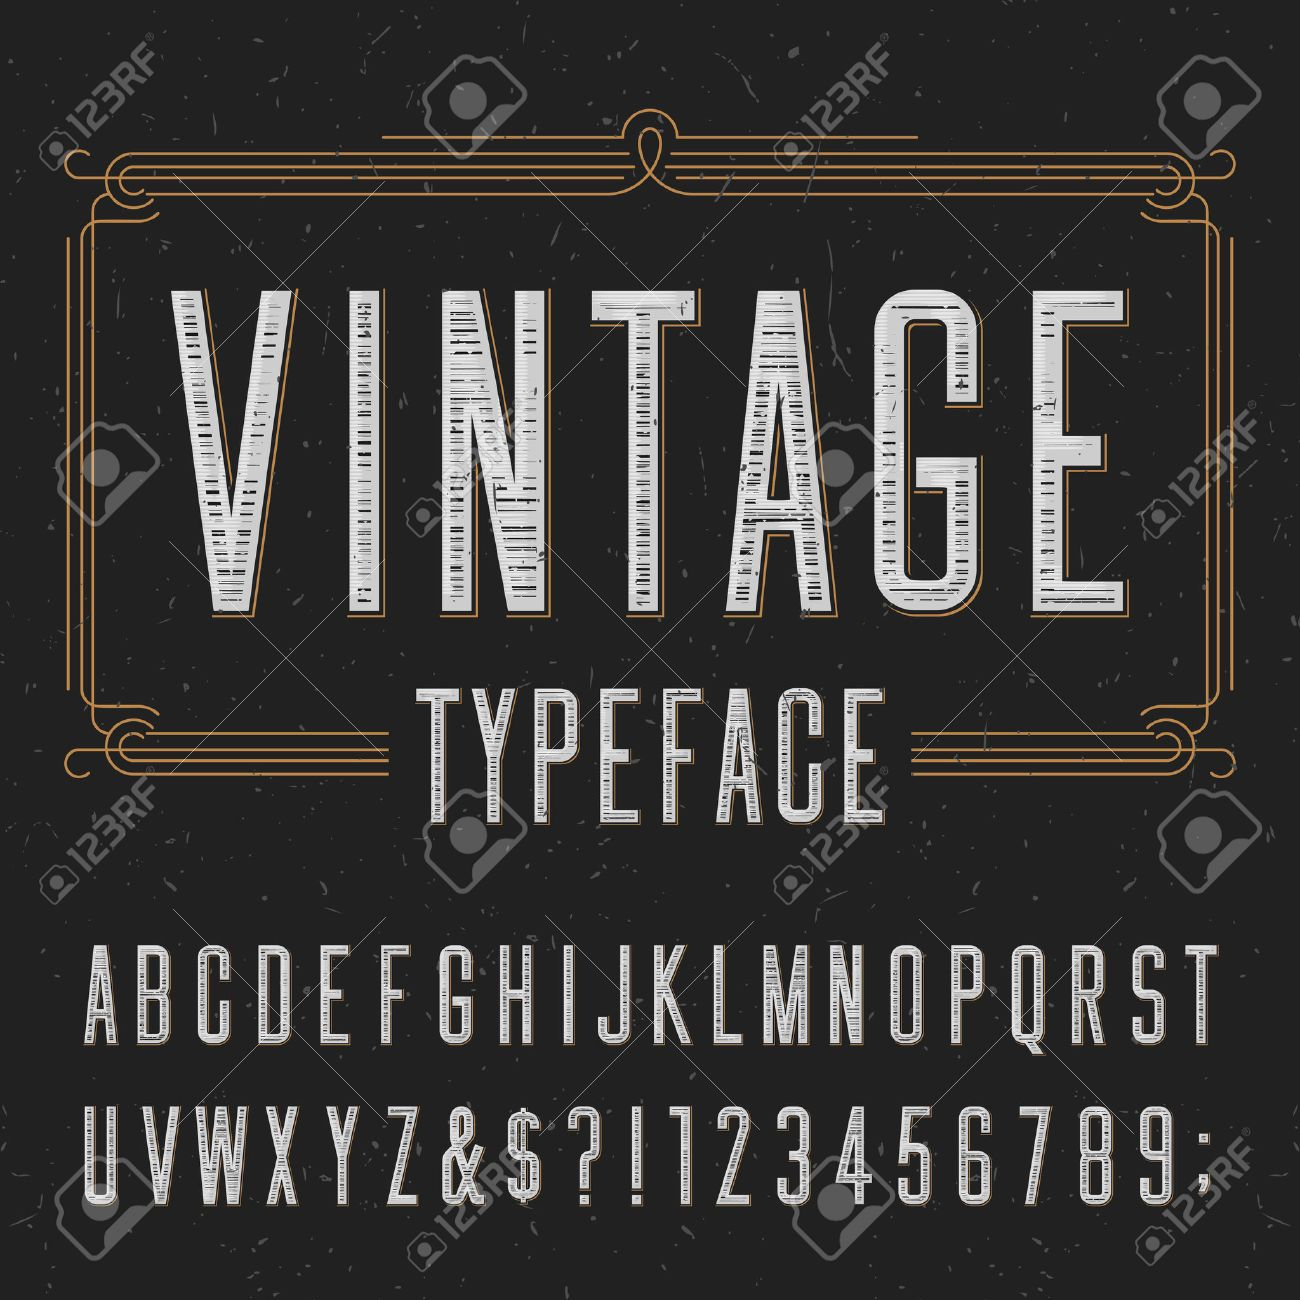 Vintage typeface with scratched overlay texture. Type letters, numbers and symbols on a dark background. Alphabet vector font for labels, headlines, posters etc. - 48931061